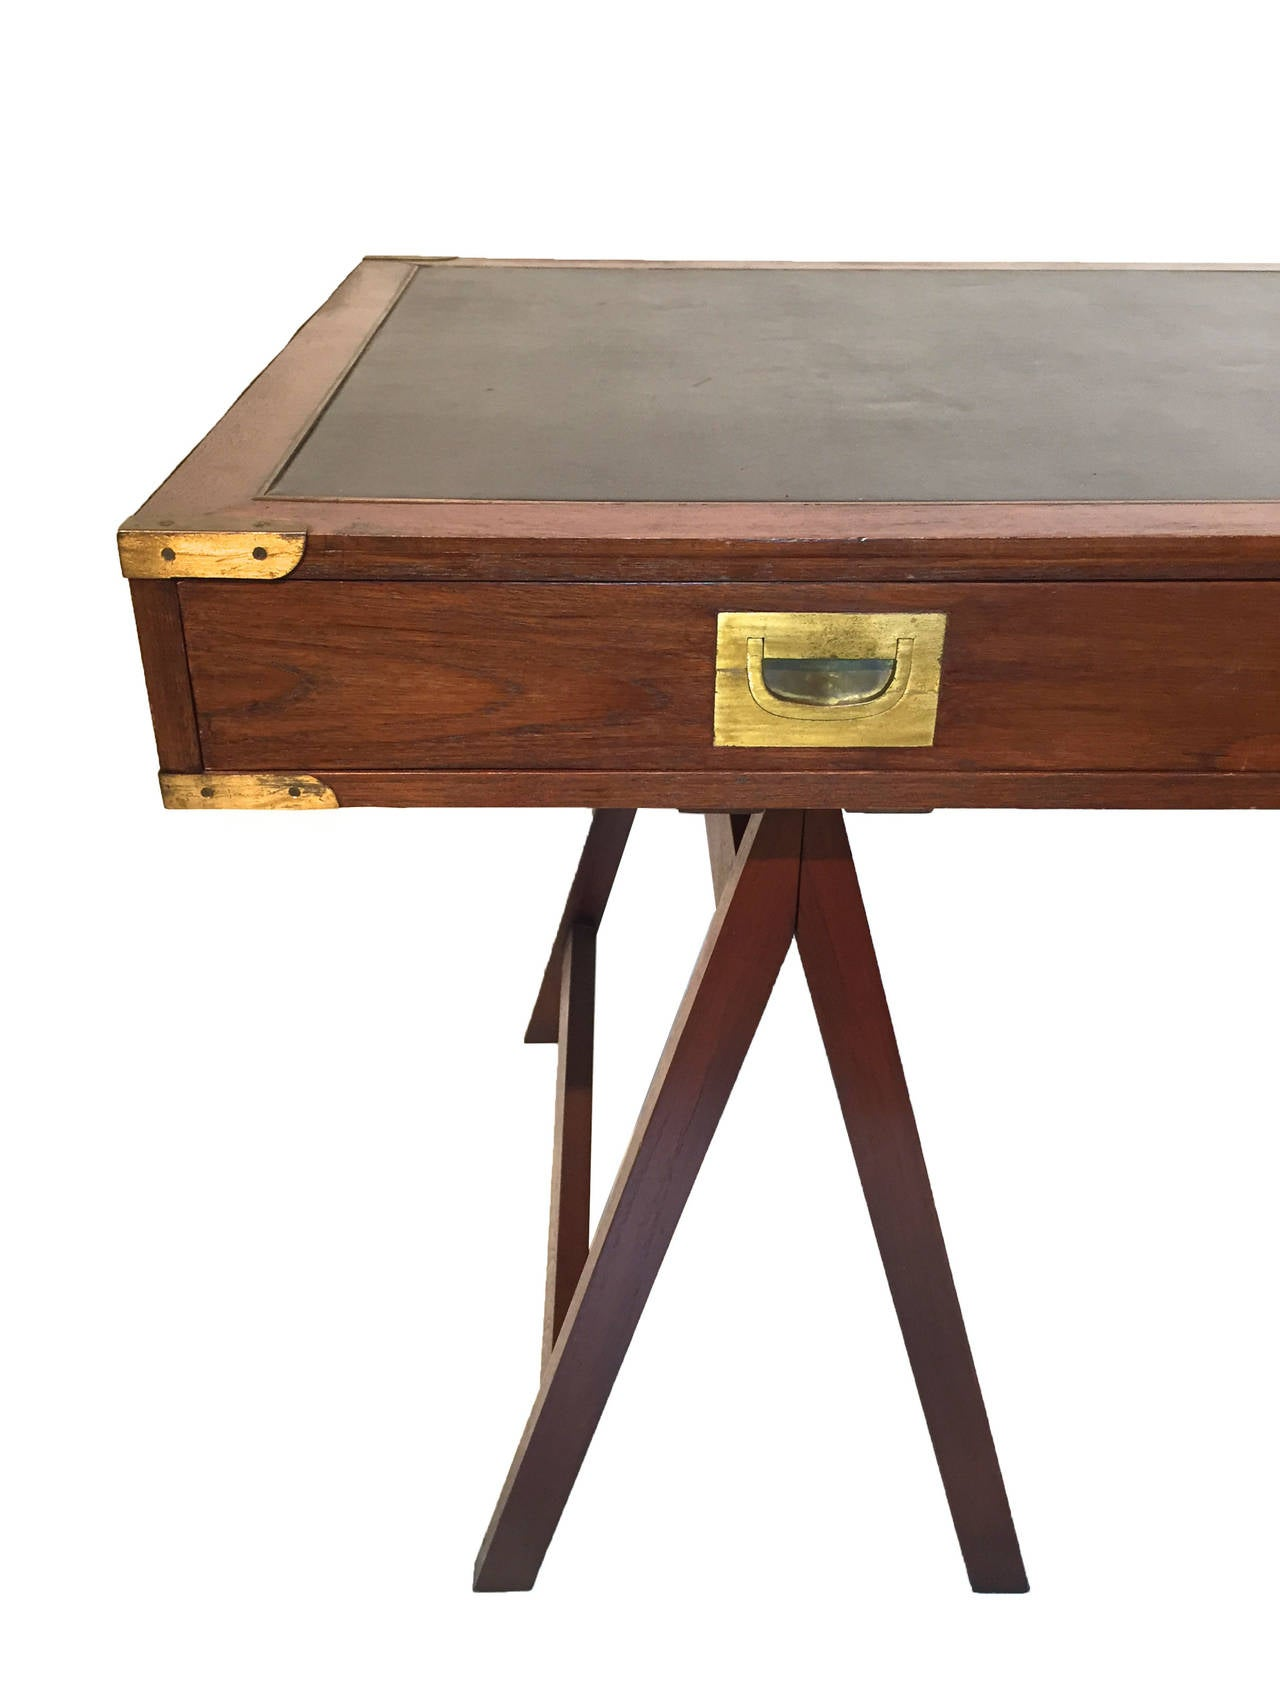 Mahogany asian campaign style desk at 1stdibs for Asian style desk